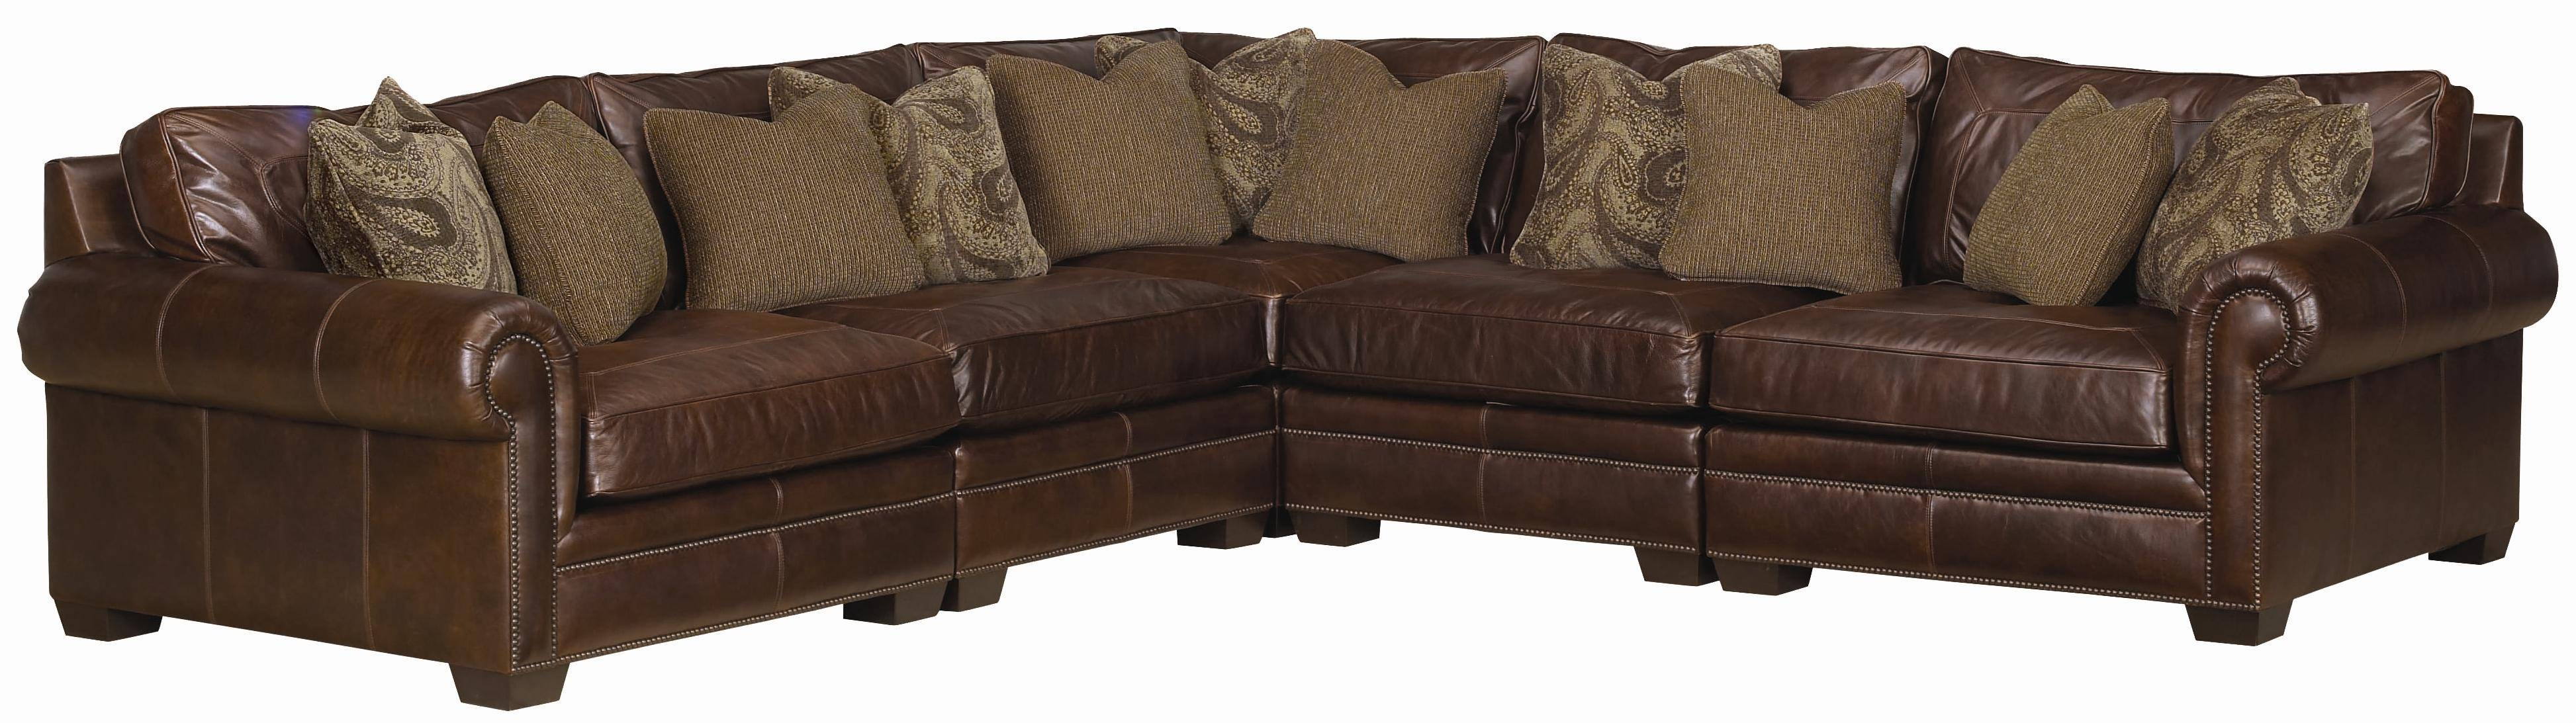 Bernhardt Grandview 5 Piece Traditional Sectional Sofa - Baeru0026#039;s within Traditional Sectional : traditional sectional sofa - Sectionals, Sofas & Couches